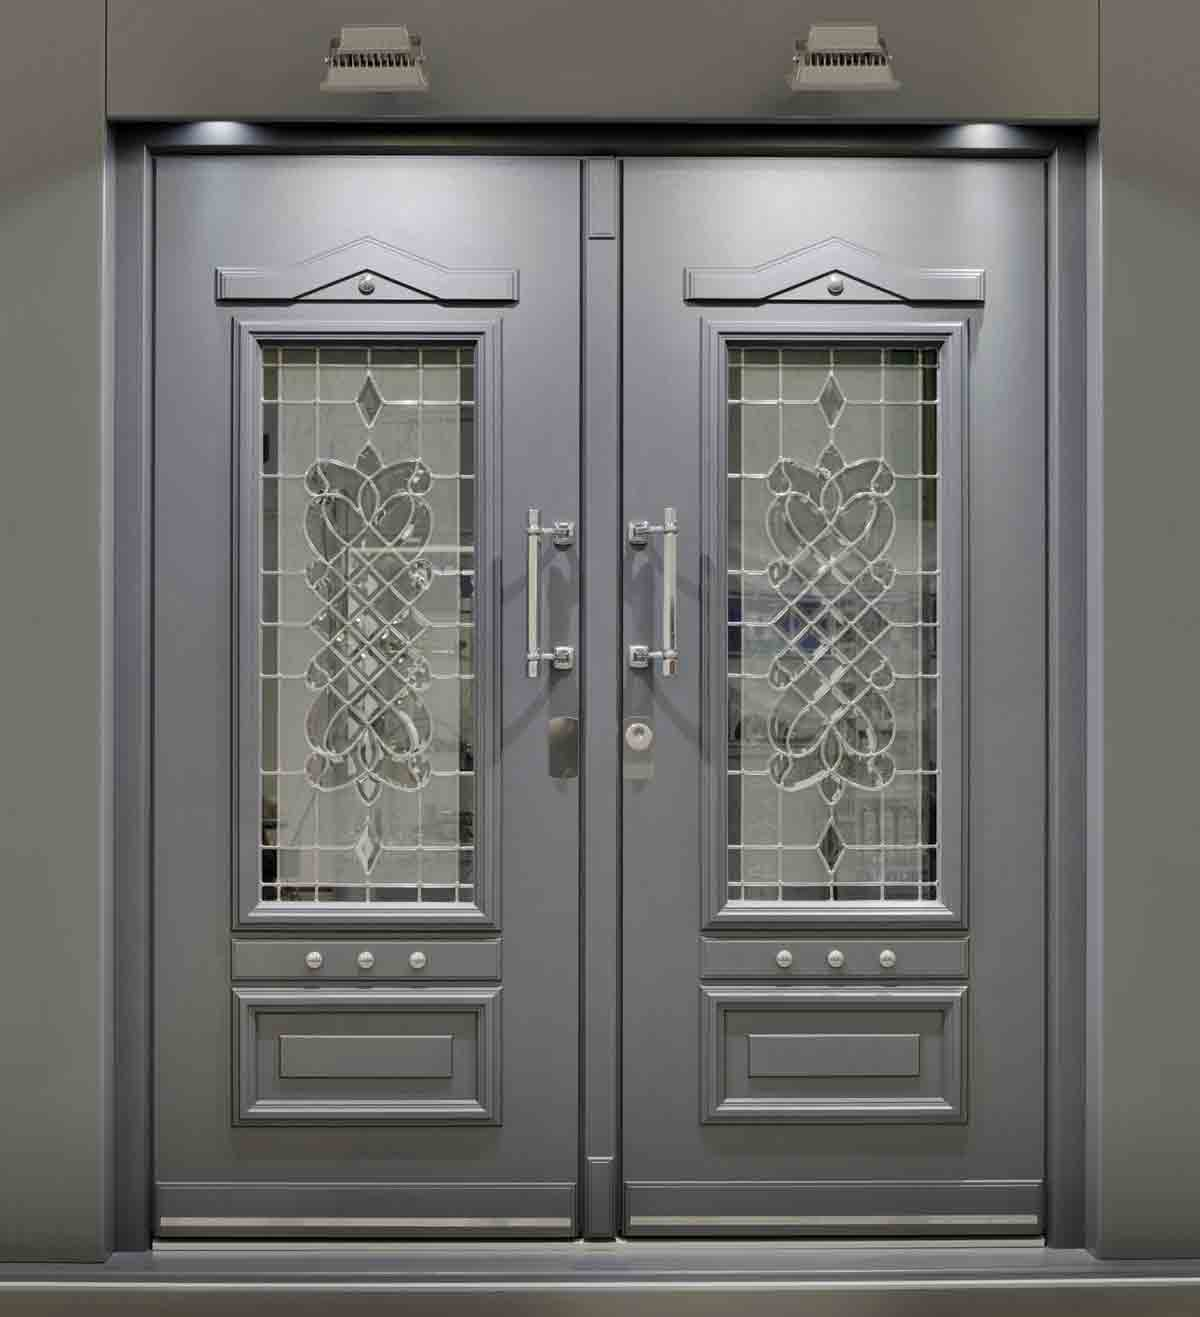 Choosing the Right Door Design to Enhance Your Homeu0027s Security Style and Efficiency & Choosing the Right Door Design to Enhance Your Homeu0027s Security ...